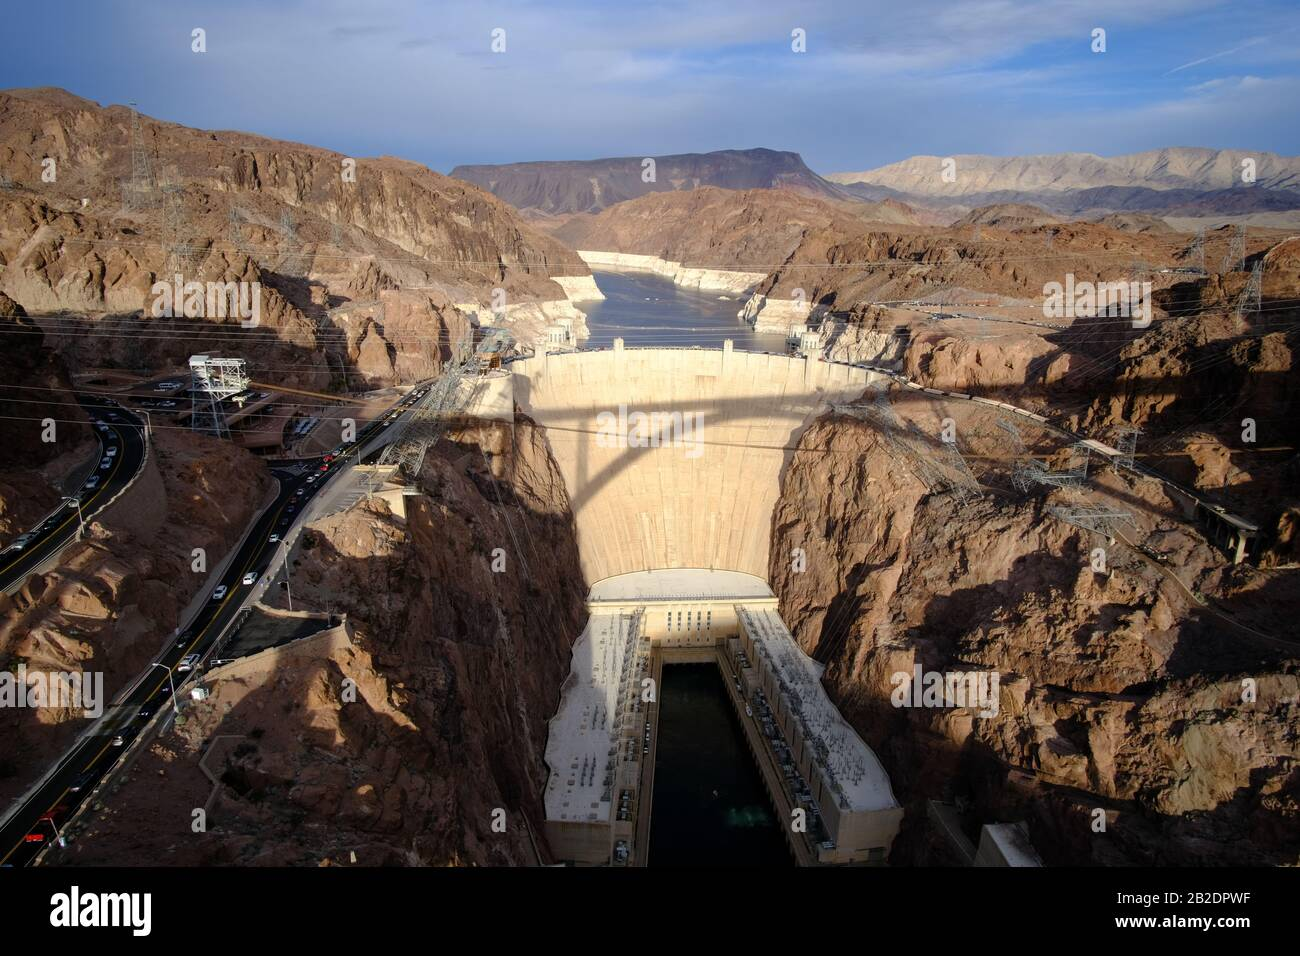 The famous Hoover Dam. Hydroelectric power station on the border of Arizona and Nevada on lake Mead. Stock Photo